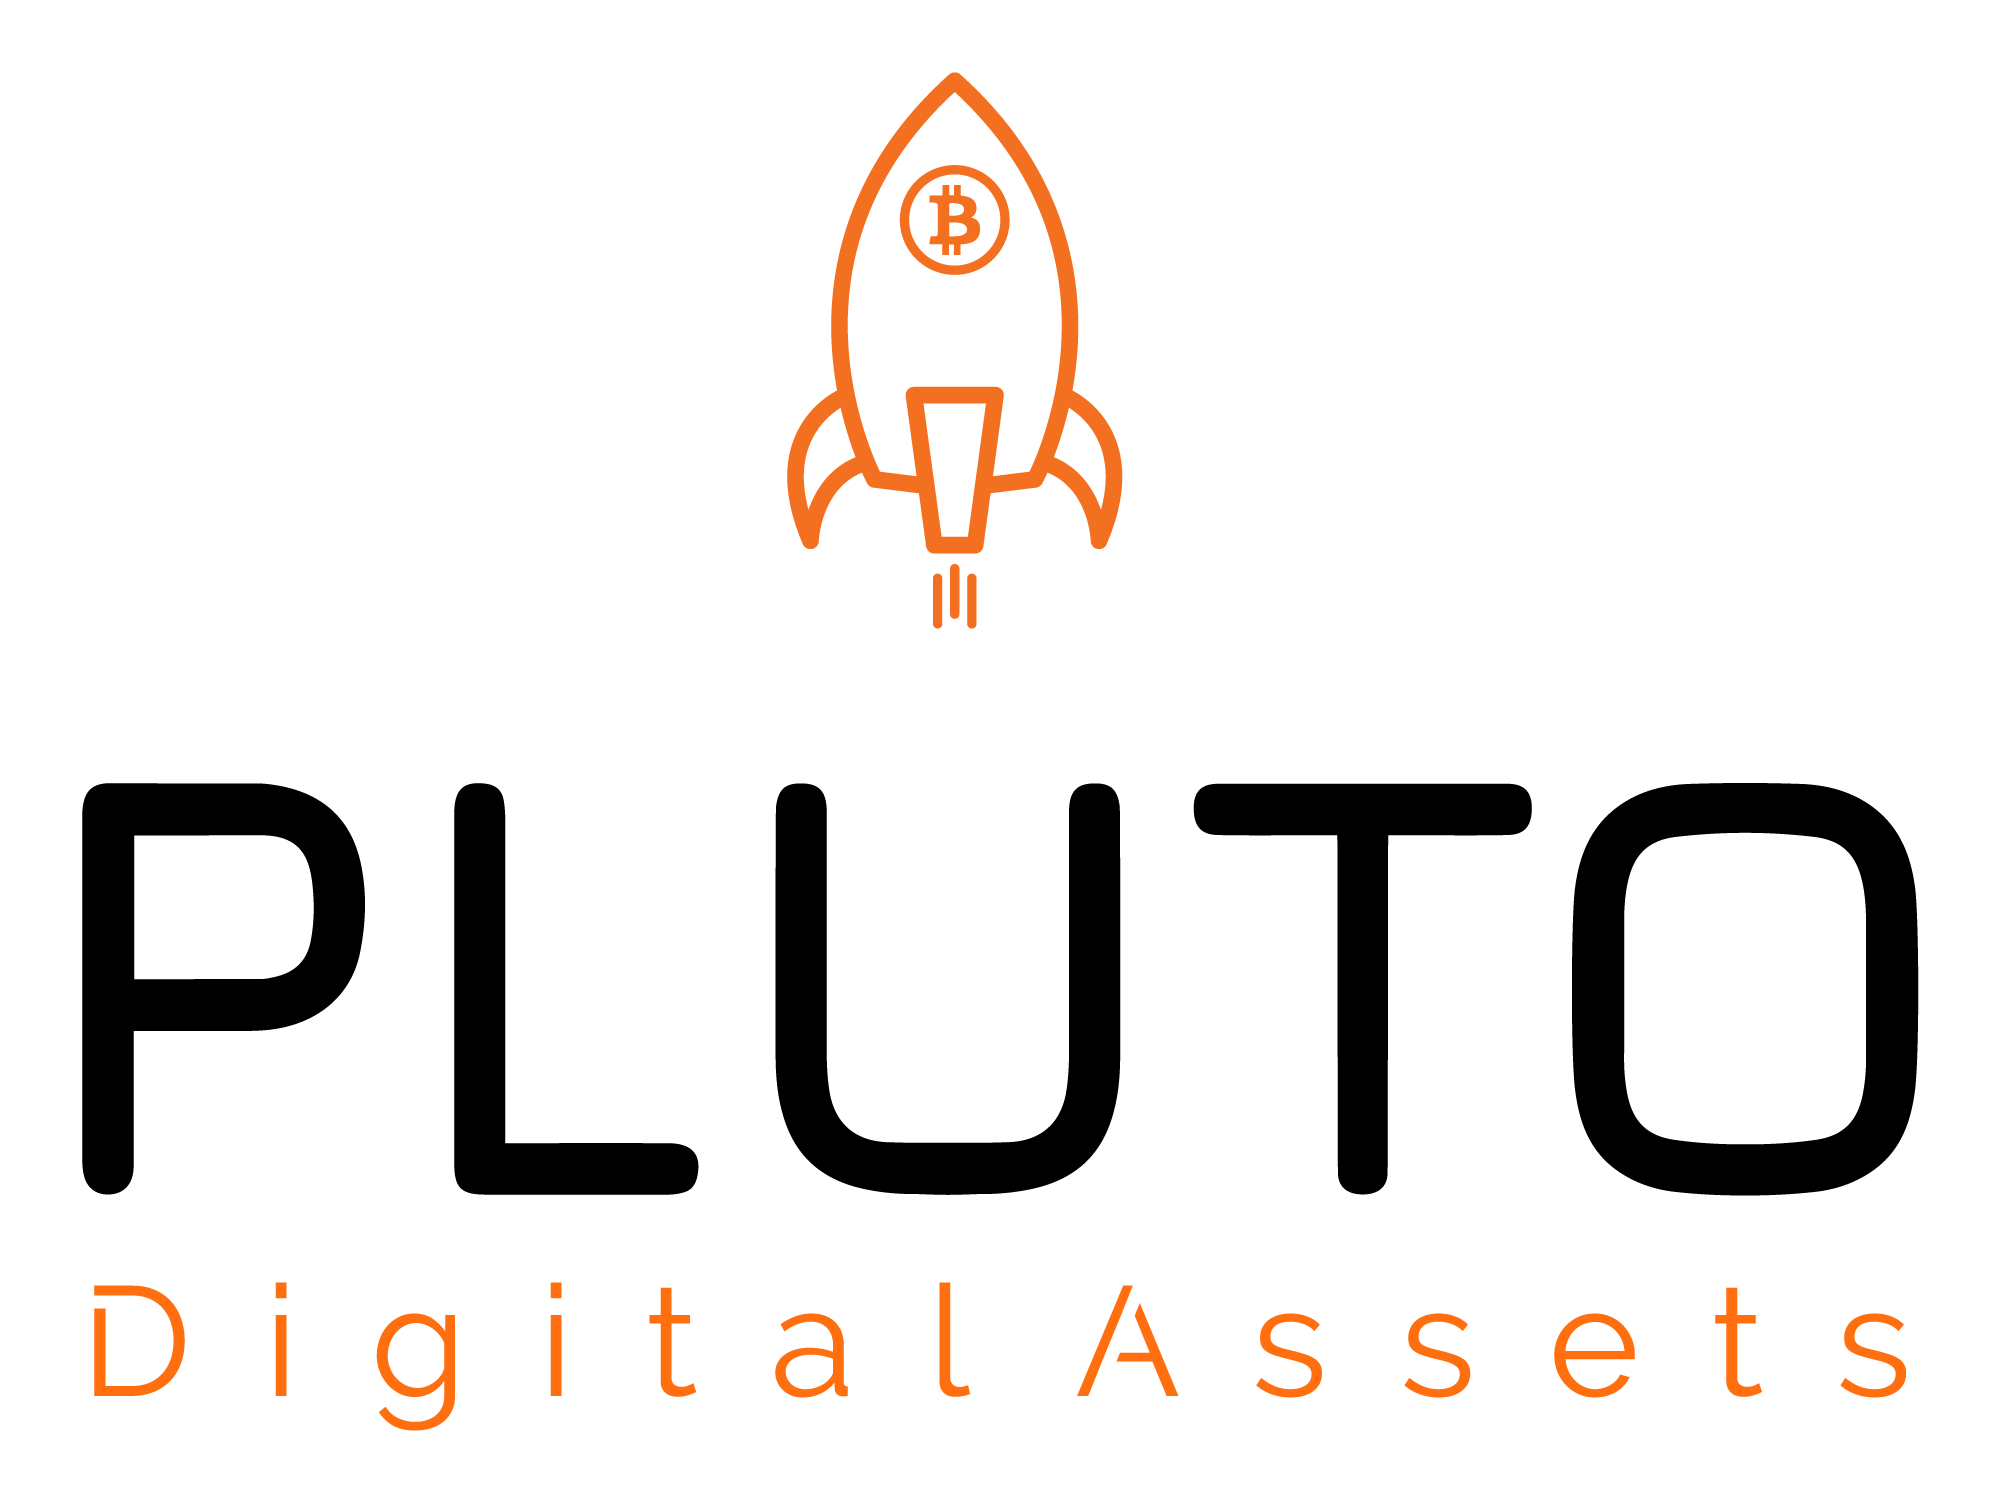 Pluto Digital Assets Raises $40M to Accelerate Investment in Decentralised Technologies